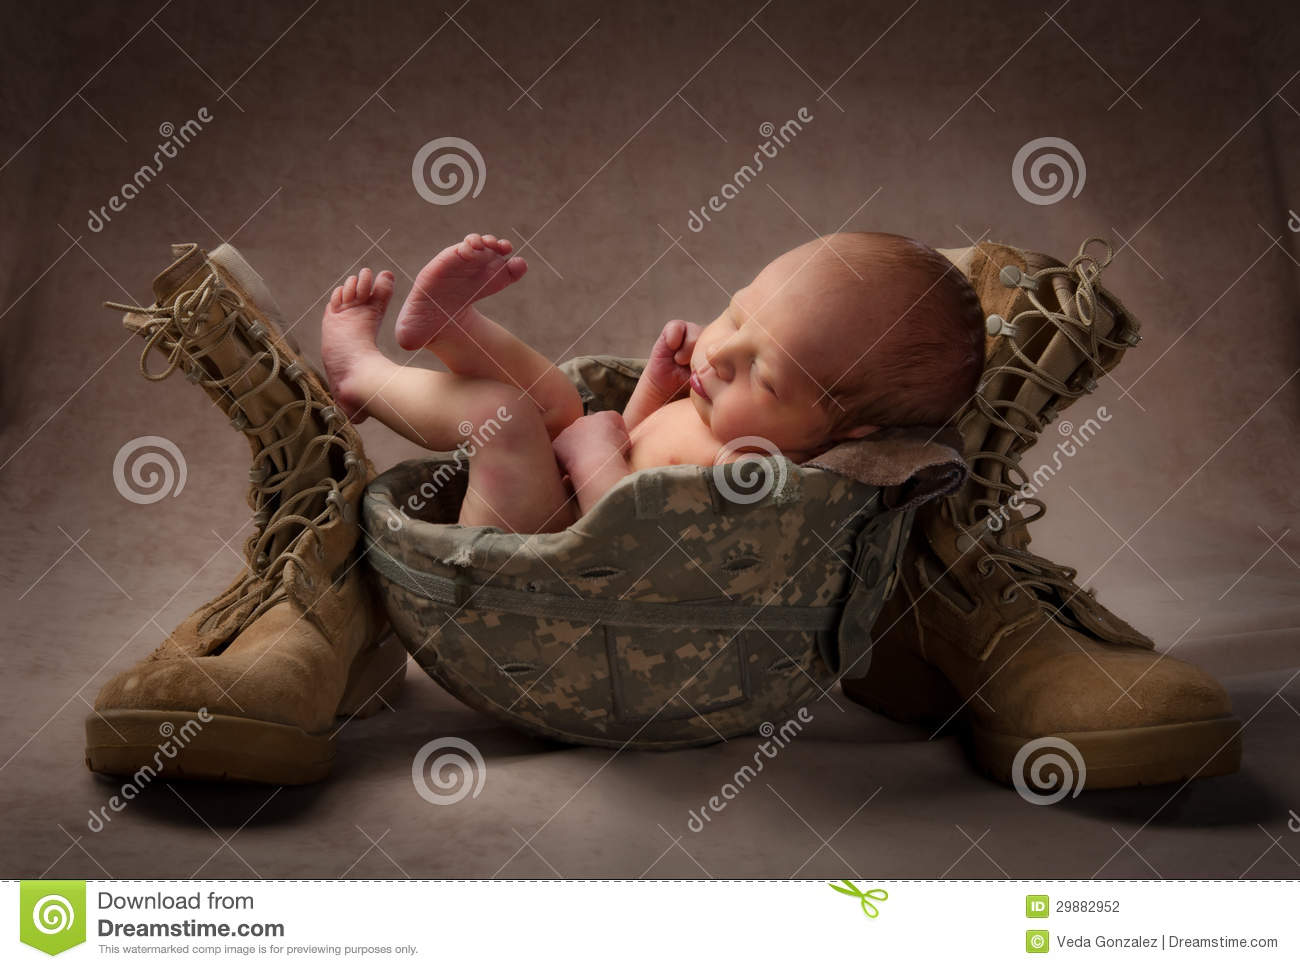 Baby combat boots - Baby combat boots size 4. Your Guide to Vinted.